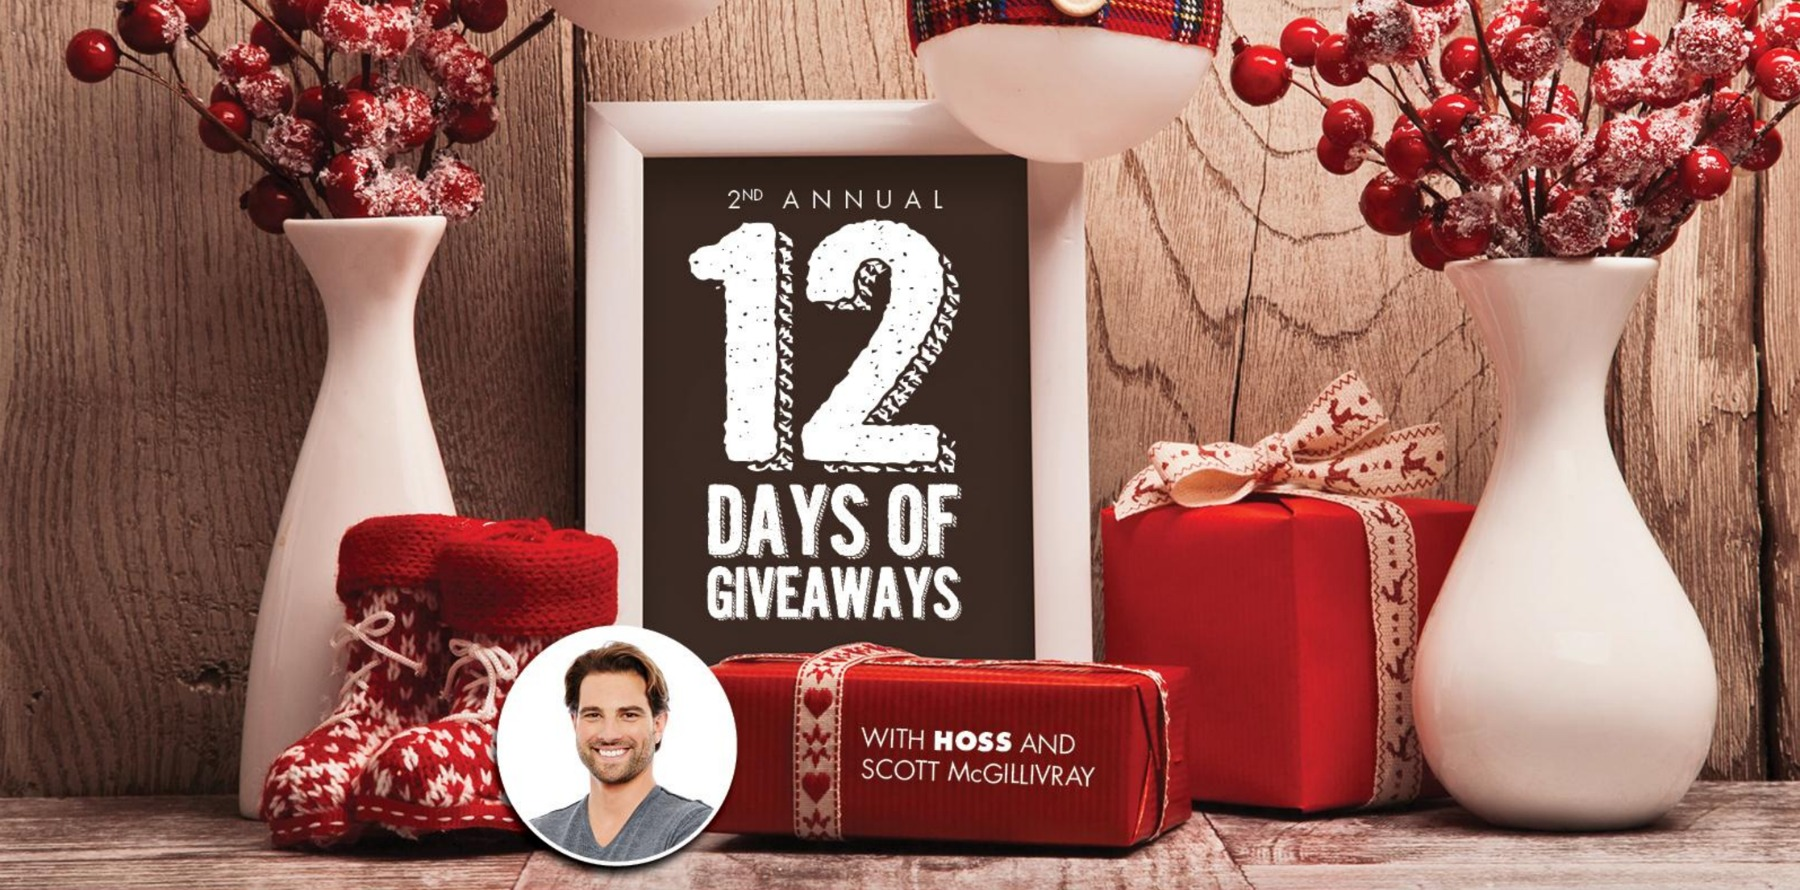 Scott McGillivray 12 Days of Giveaways